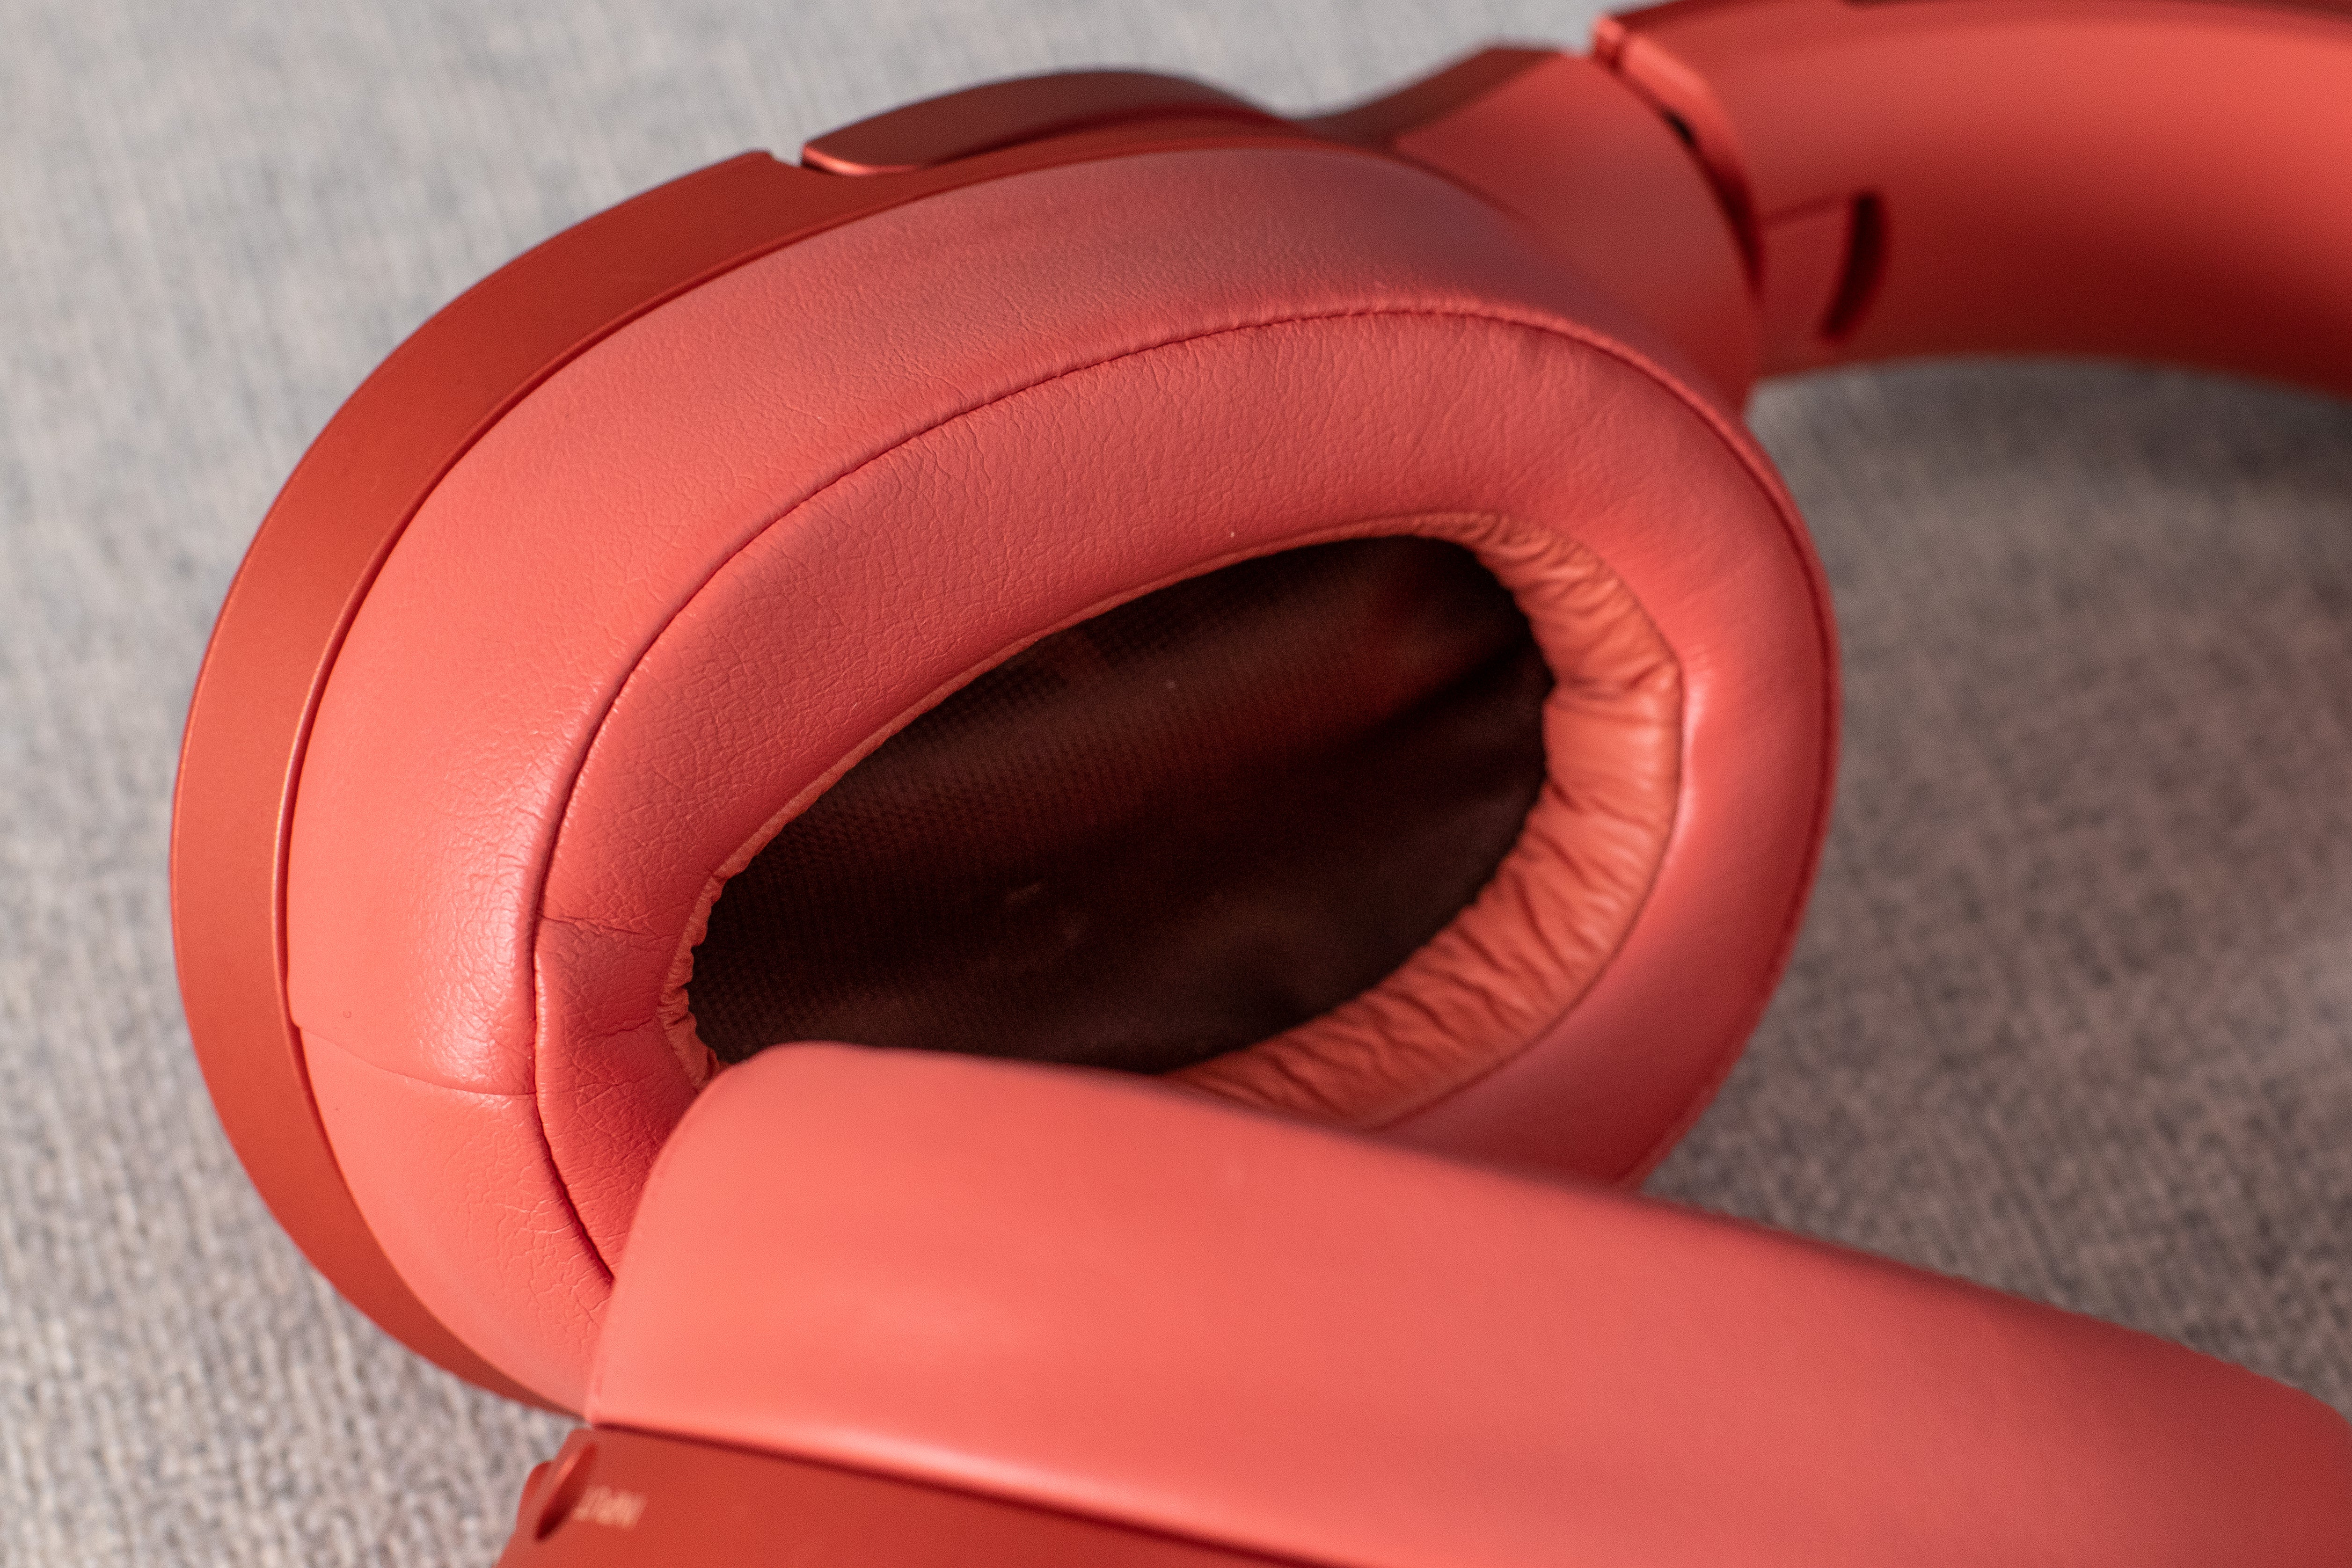 Earpads on the WH-H900N headphones